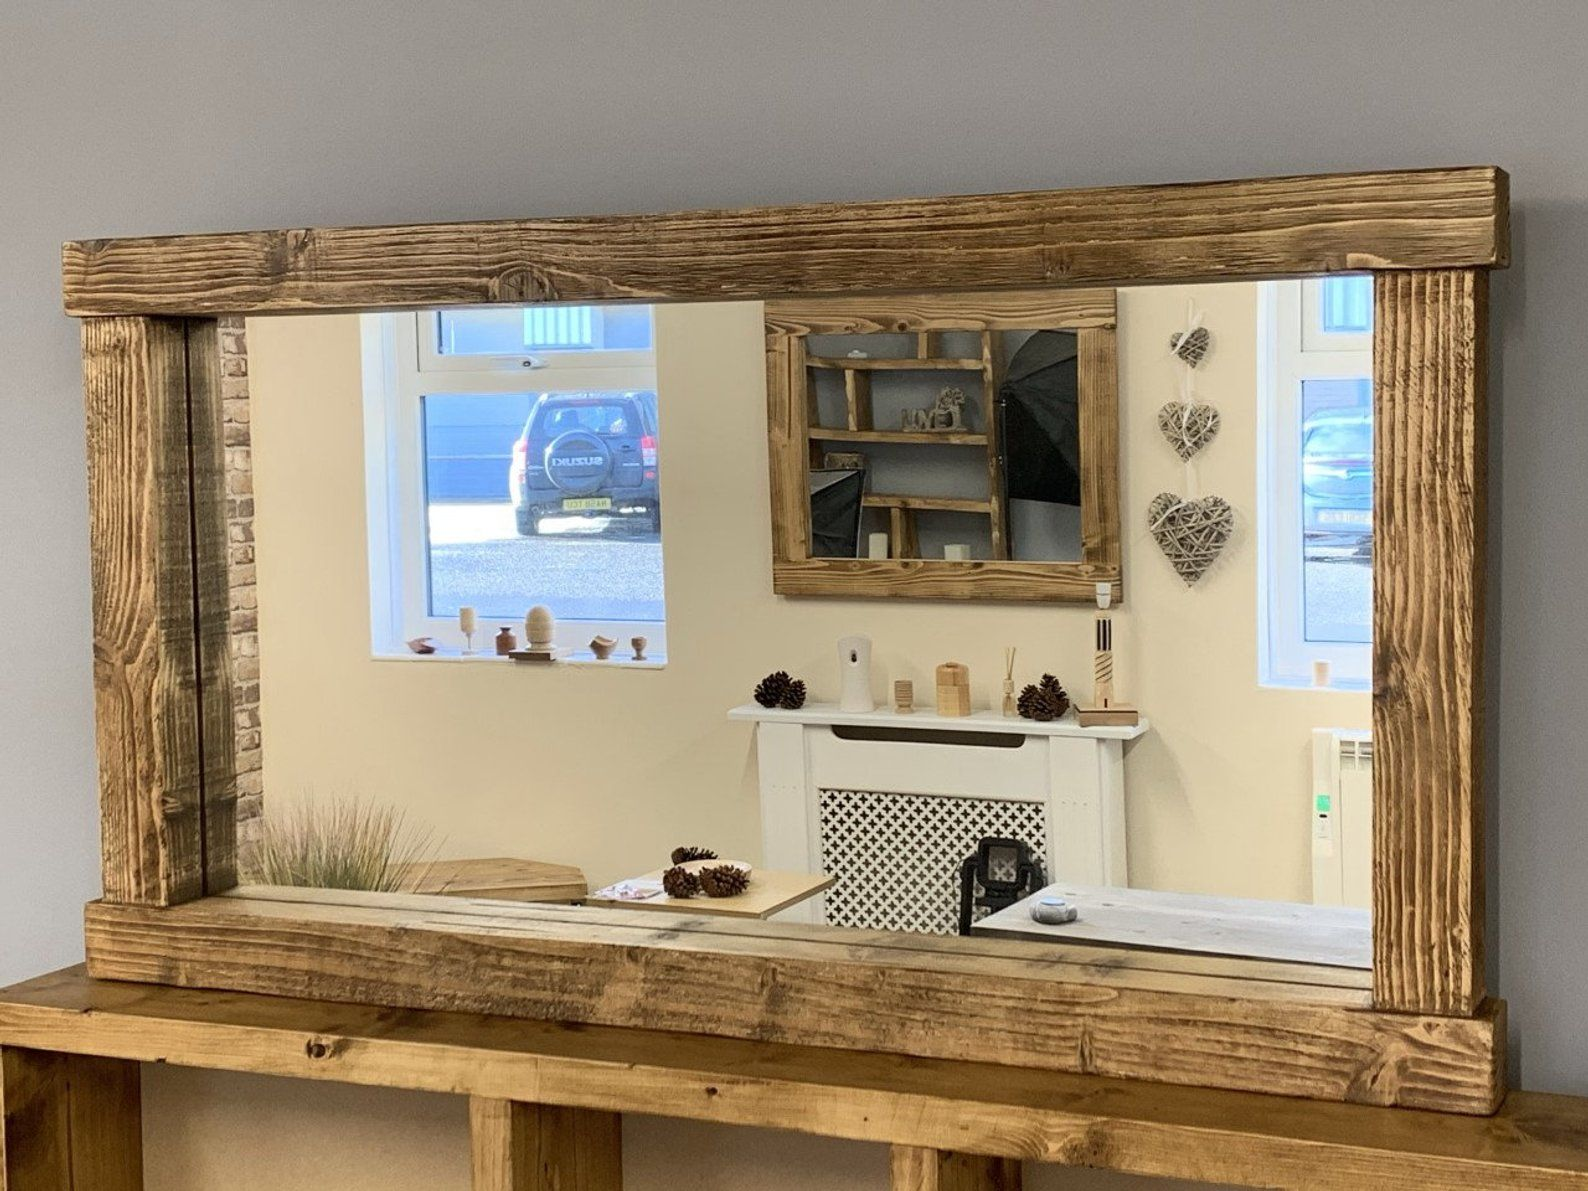 Rustic mirror with candle shelf made from reclaimed wood